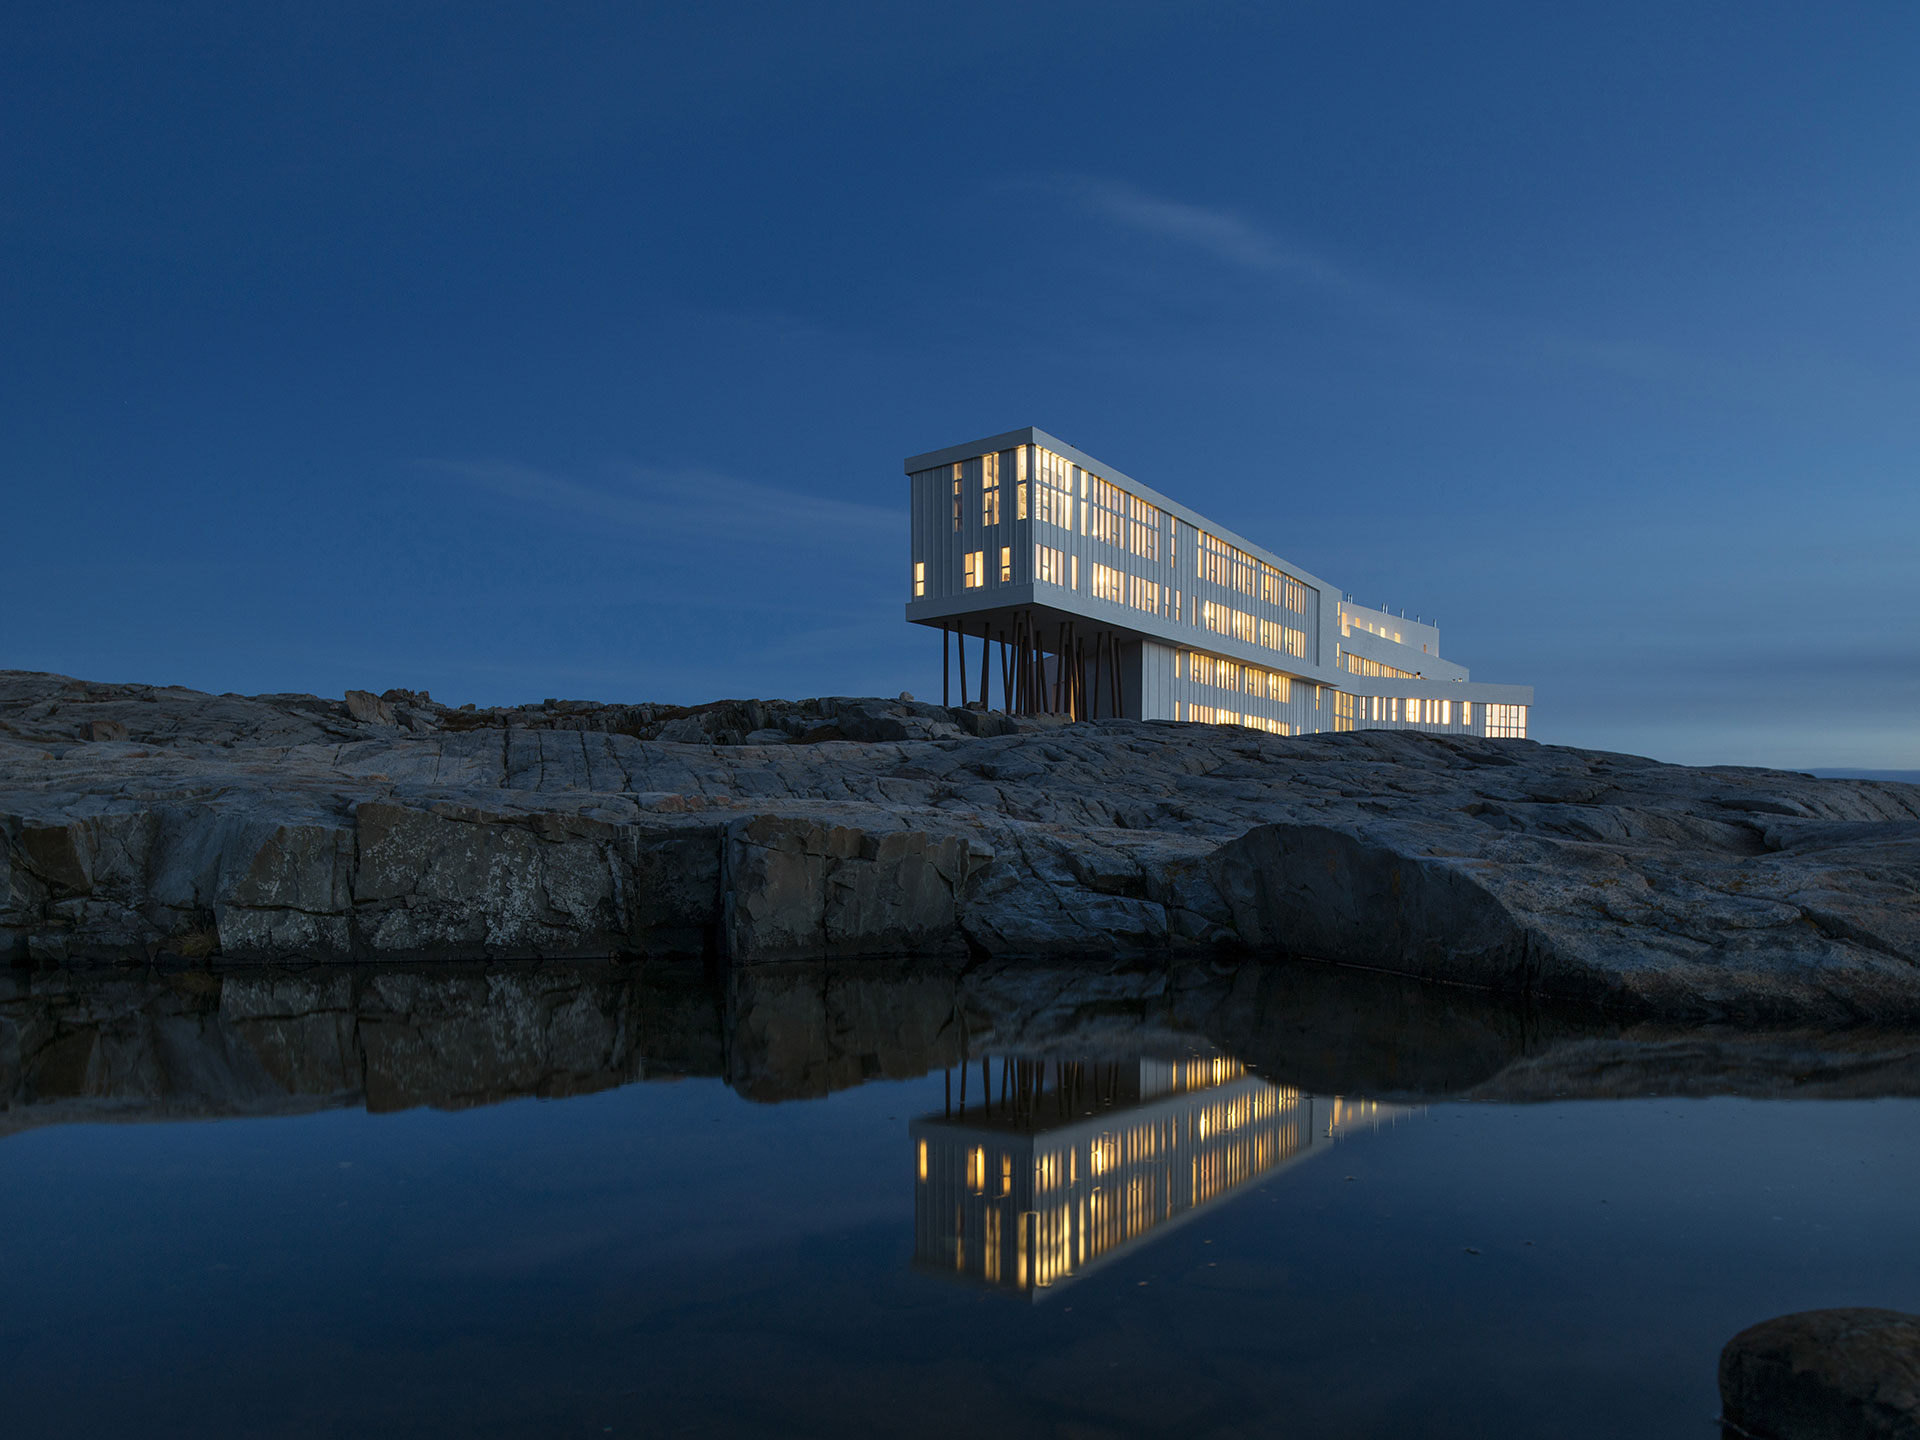 Fogo Island Inn by night